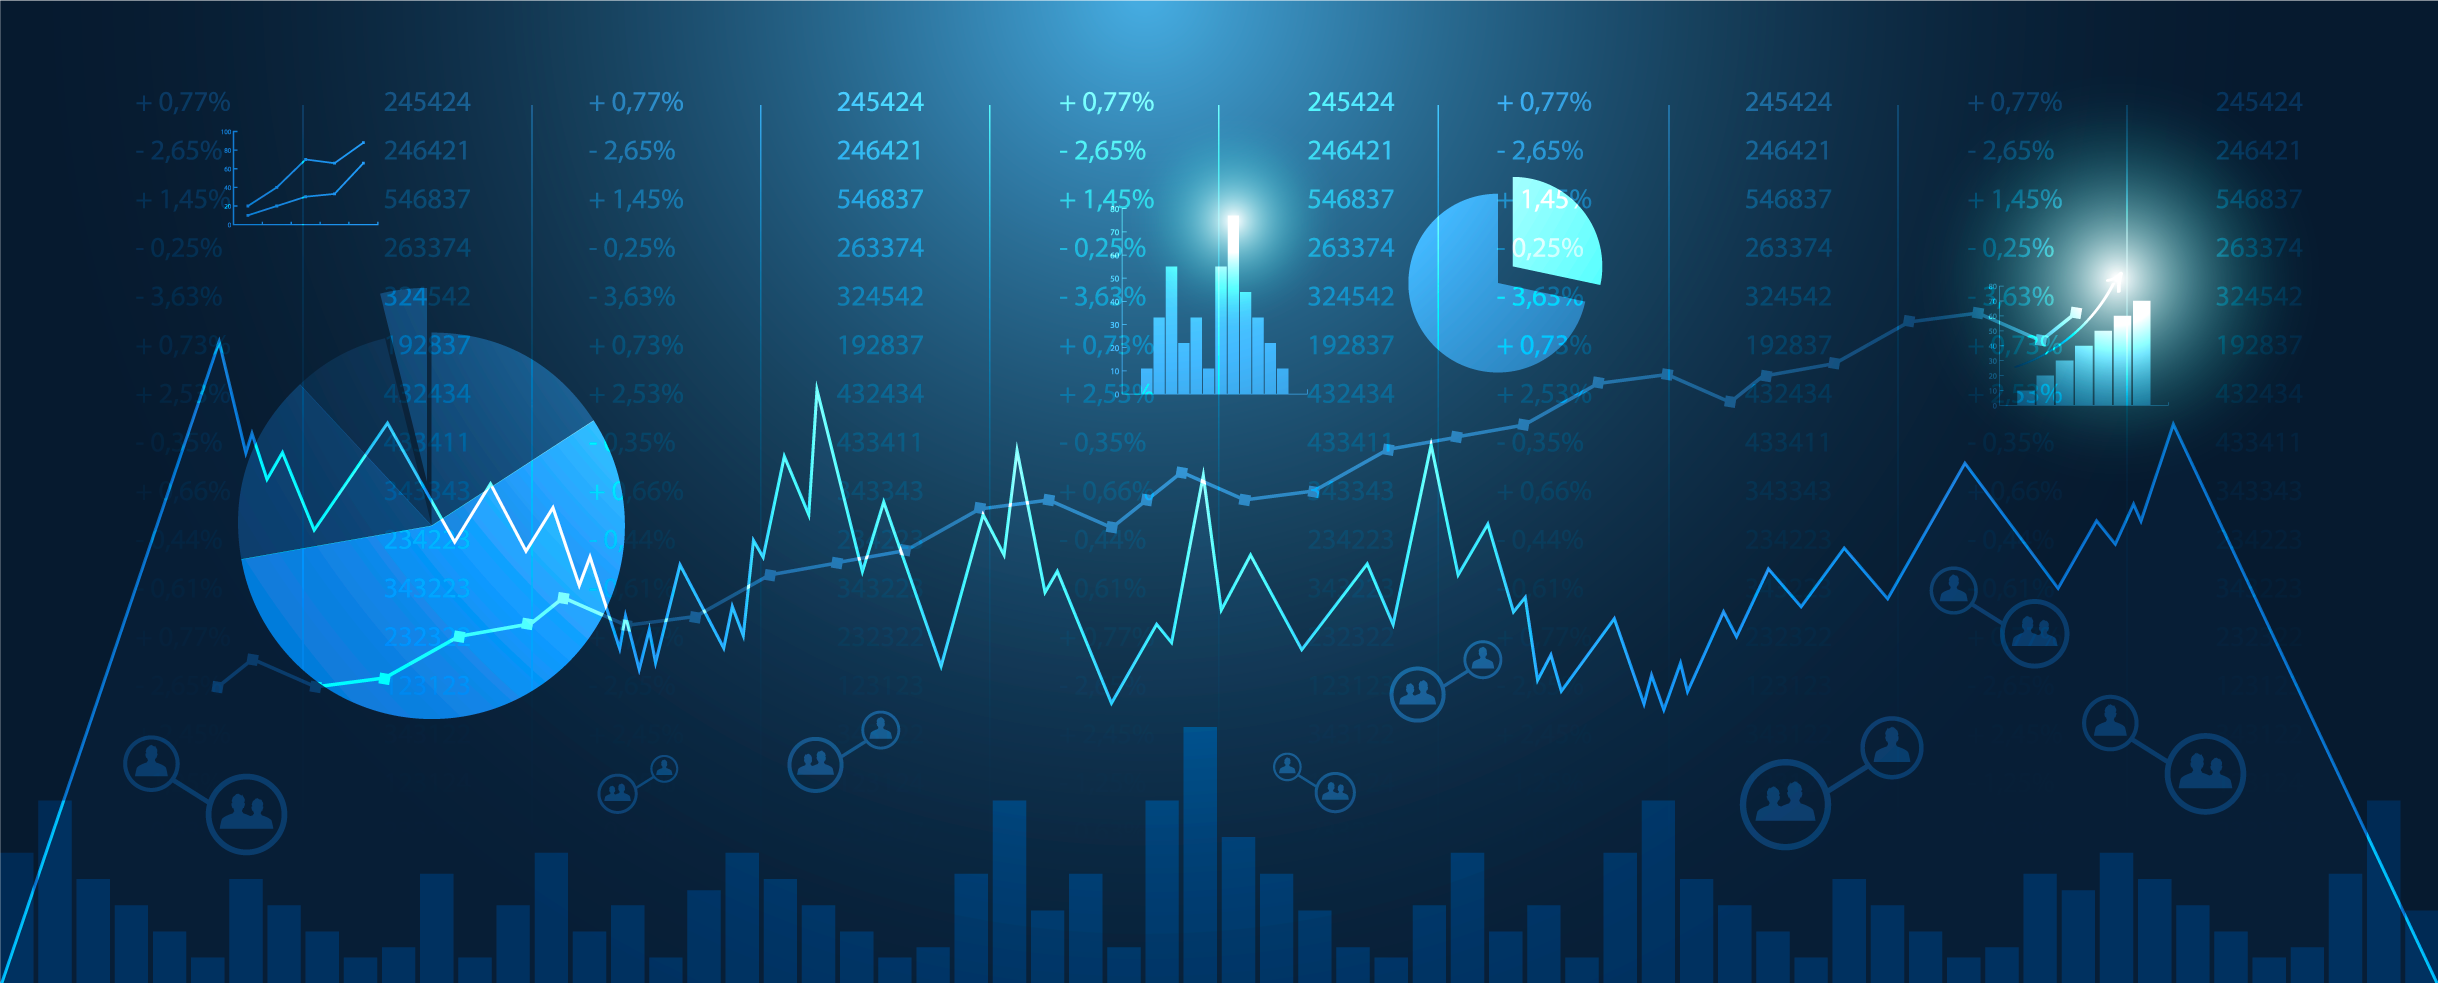 Expect More From the Data Visualizations (Charts) on your BI Dashboard